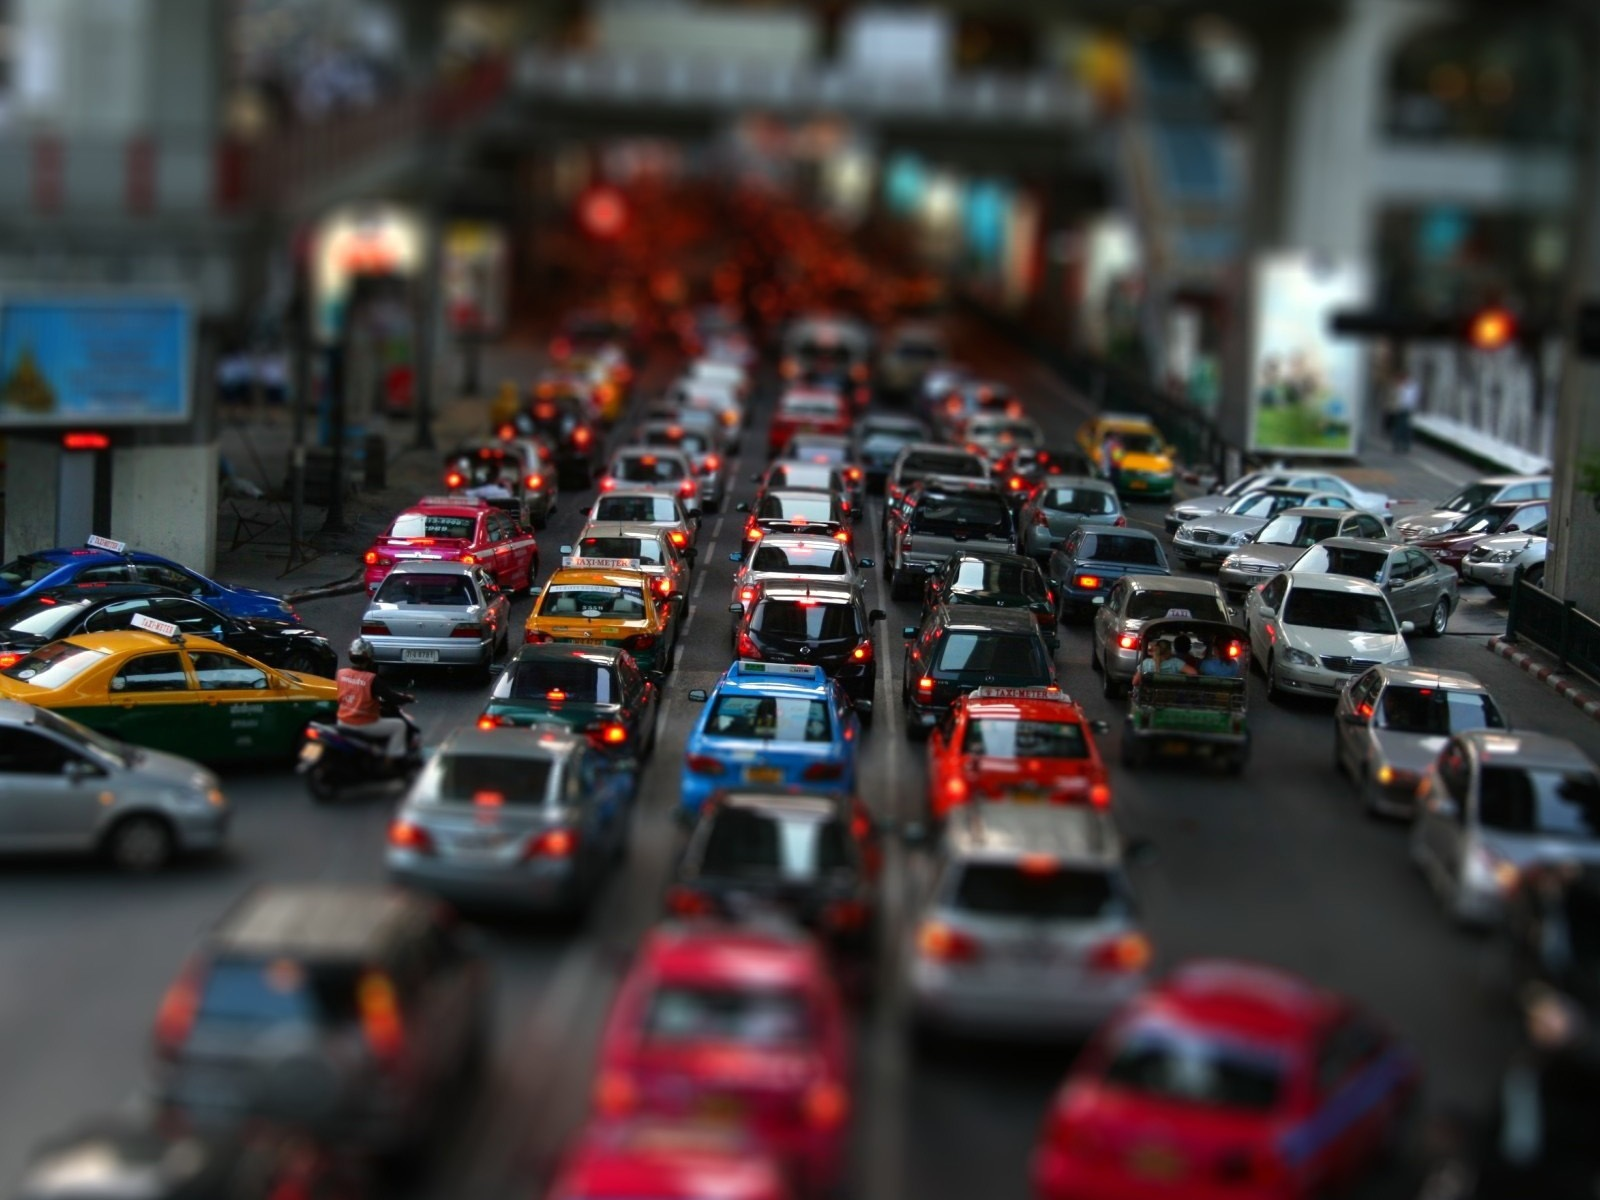 Wallpaper Street Car Traffic Jam 1920x1200 HD Picture, Image